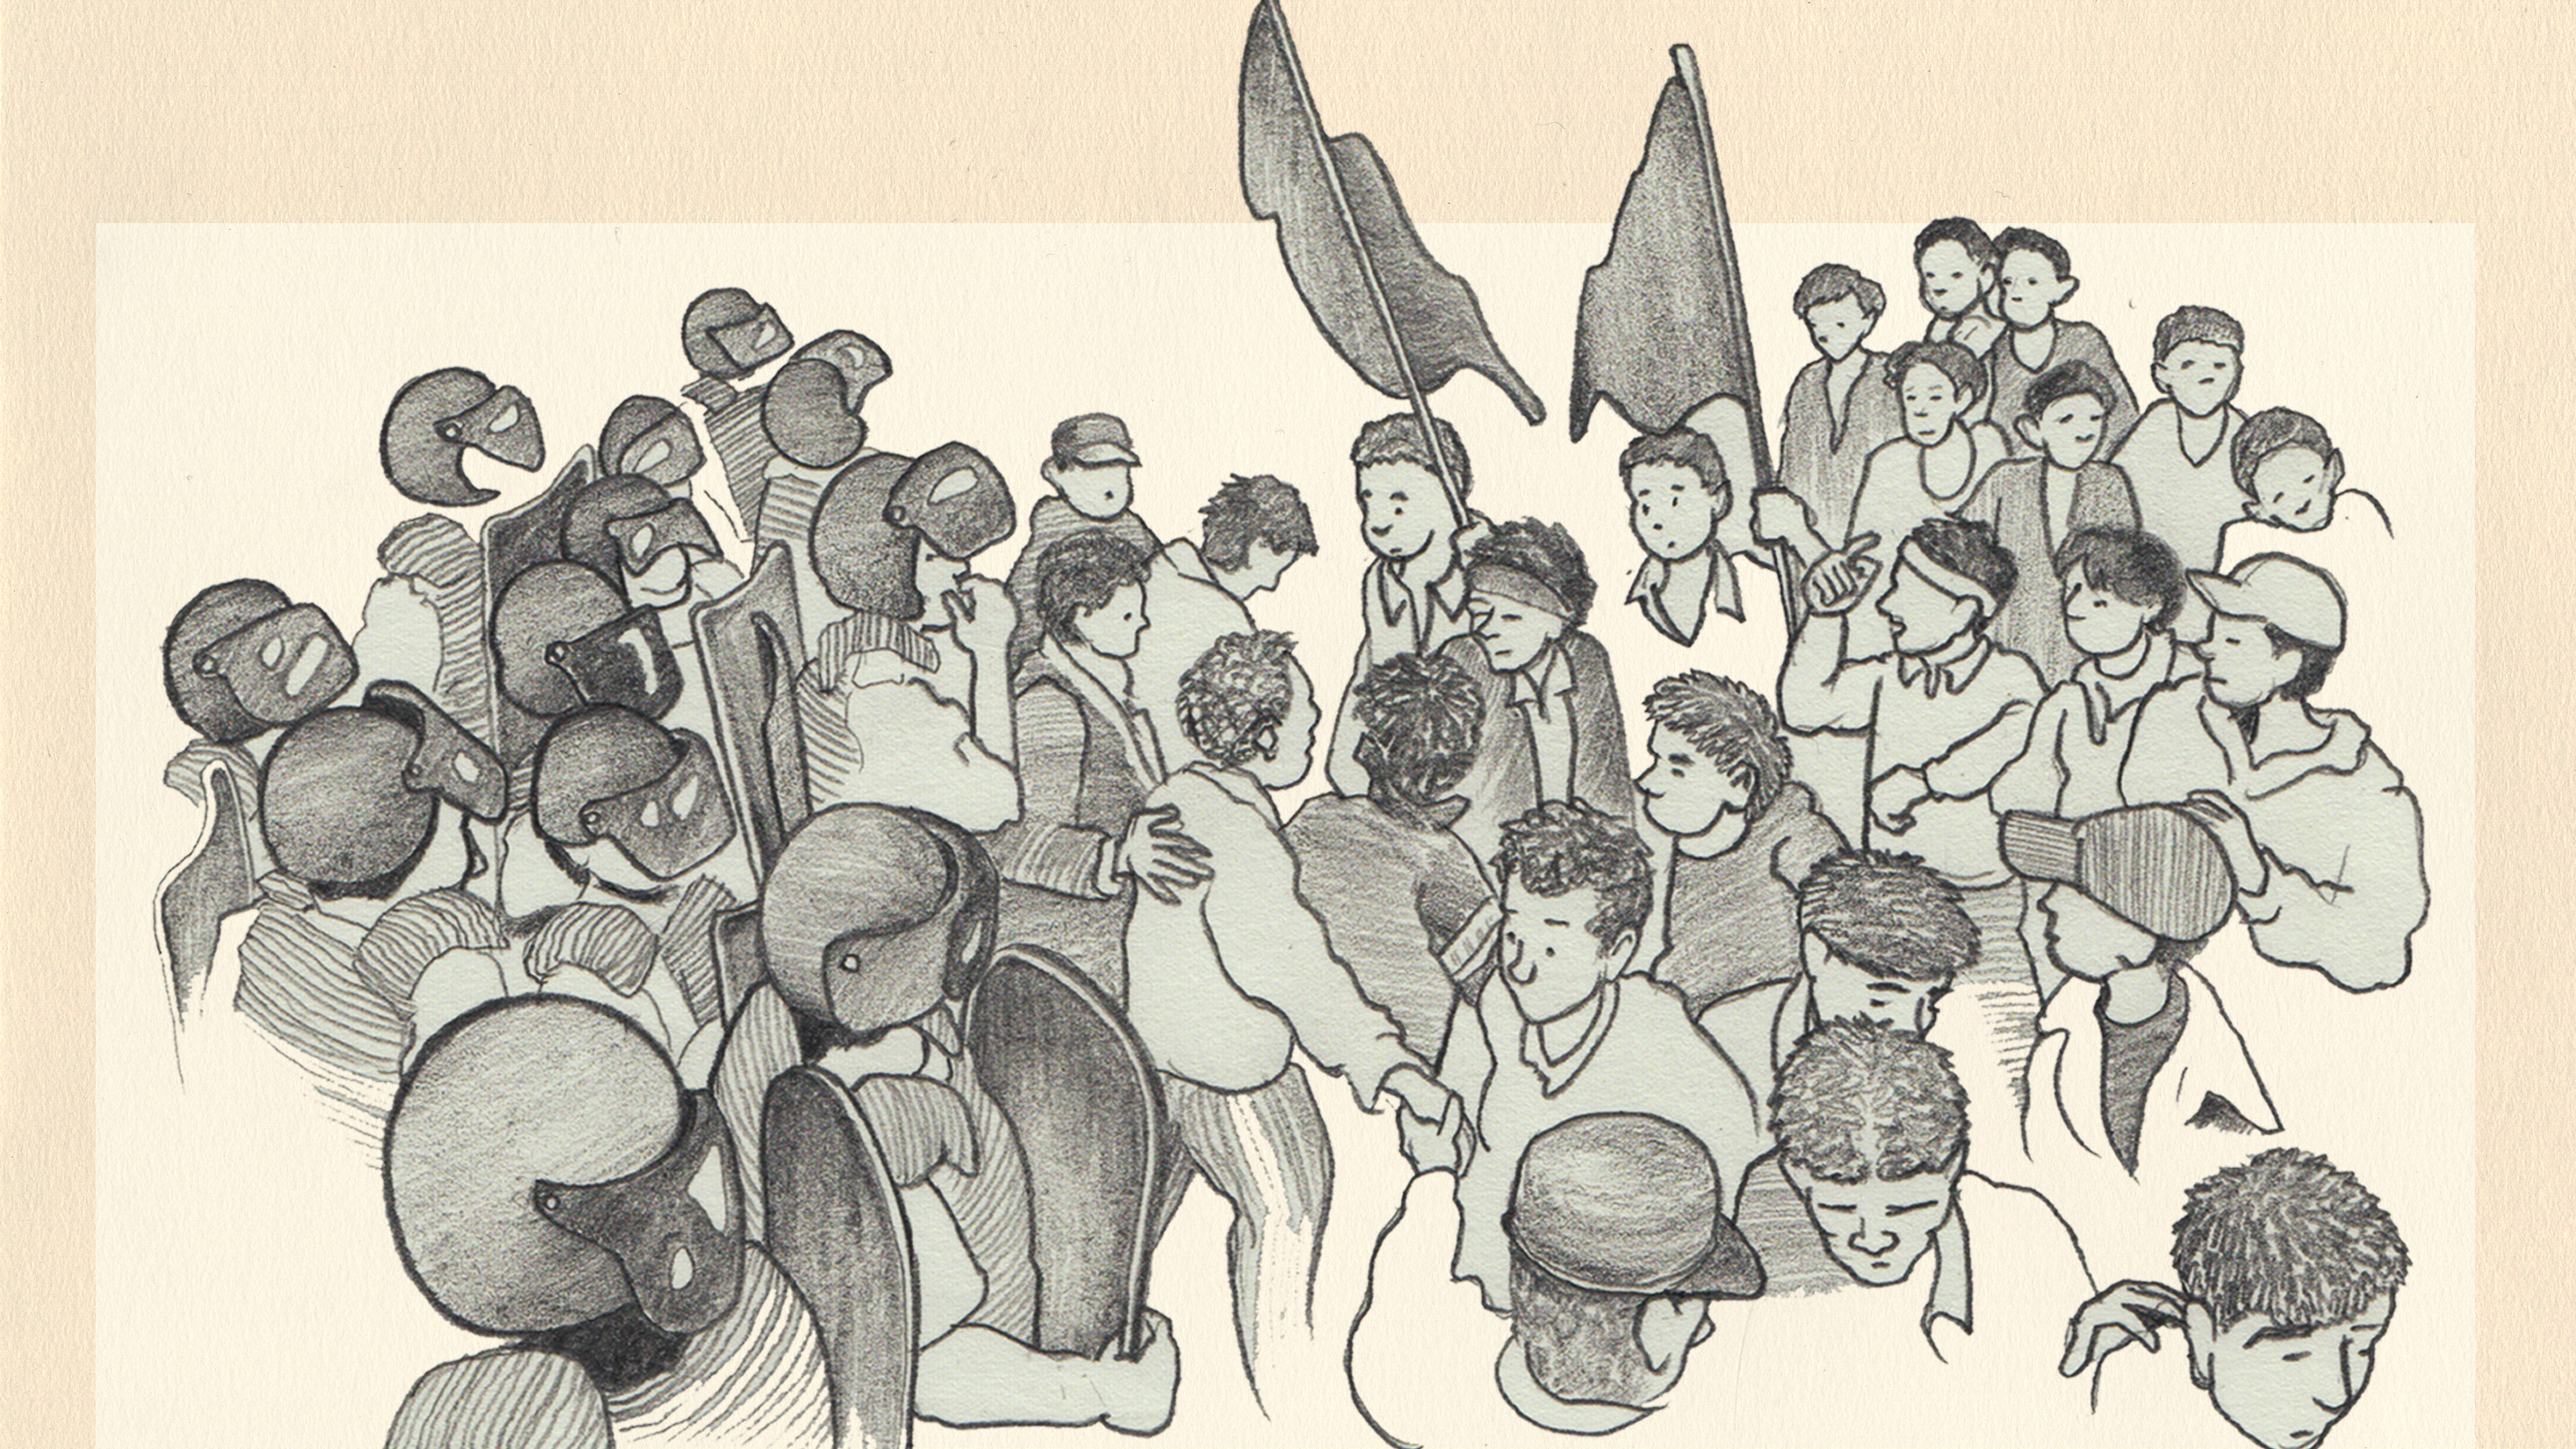 A cartoon image of protestors waving flags and police with helmets and shields